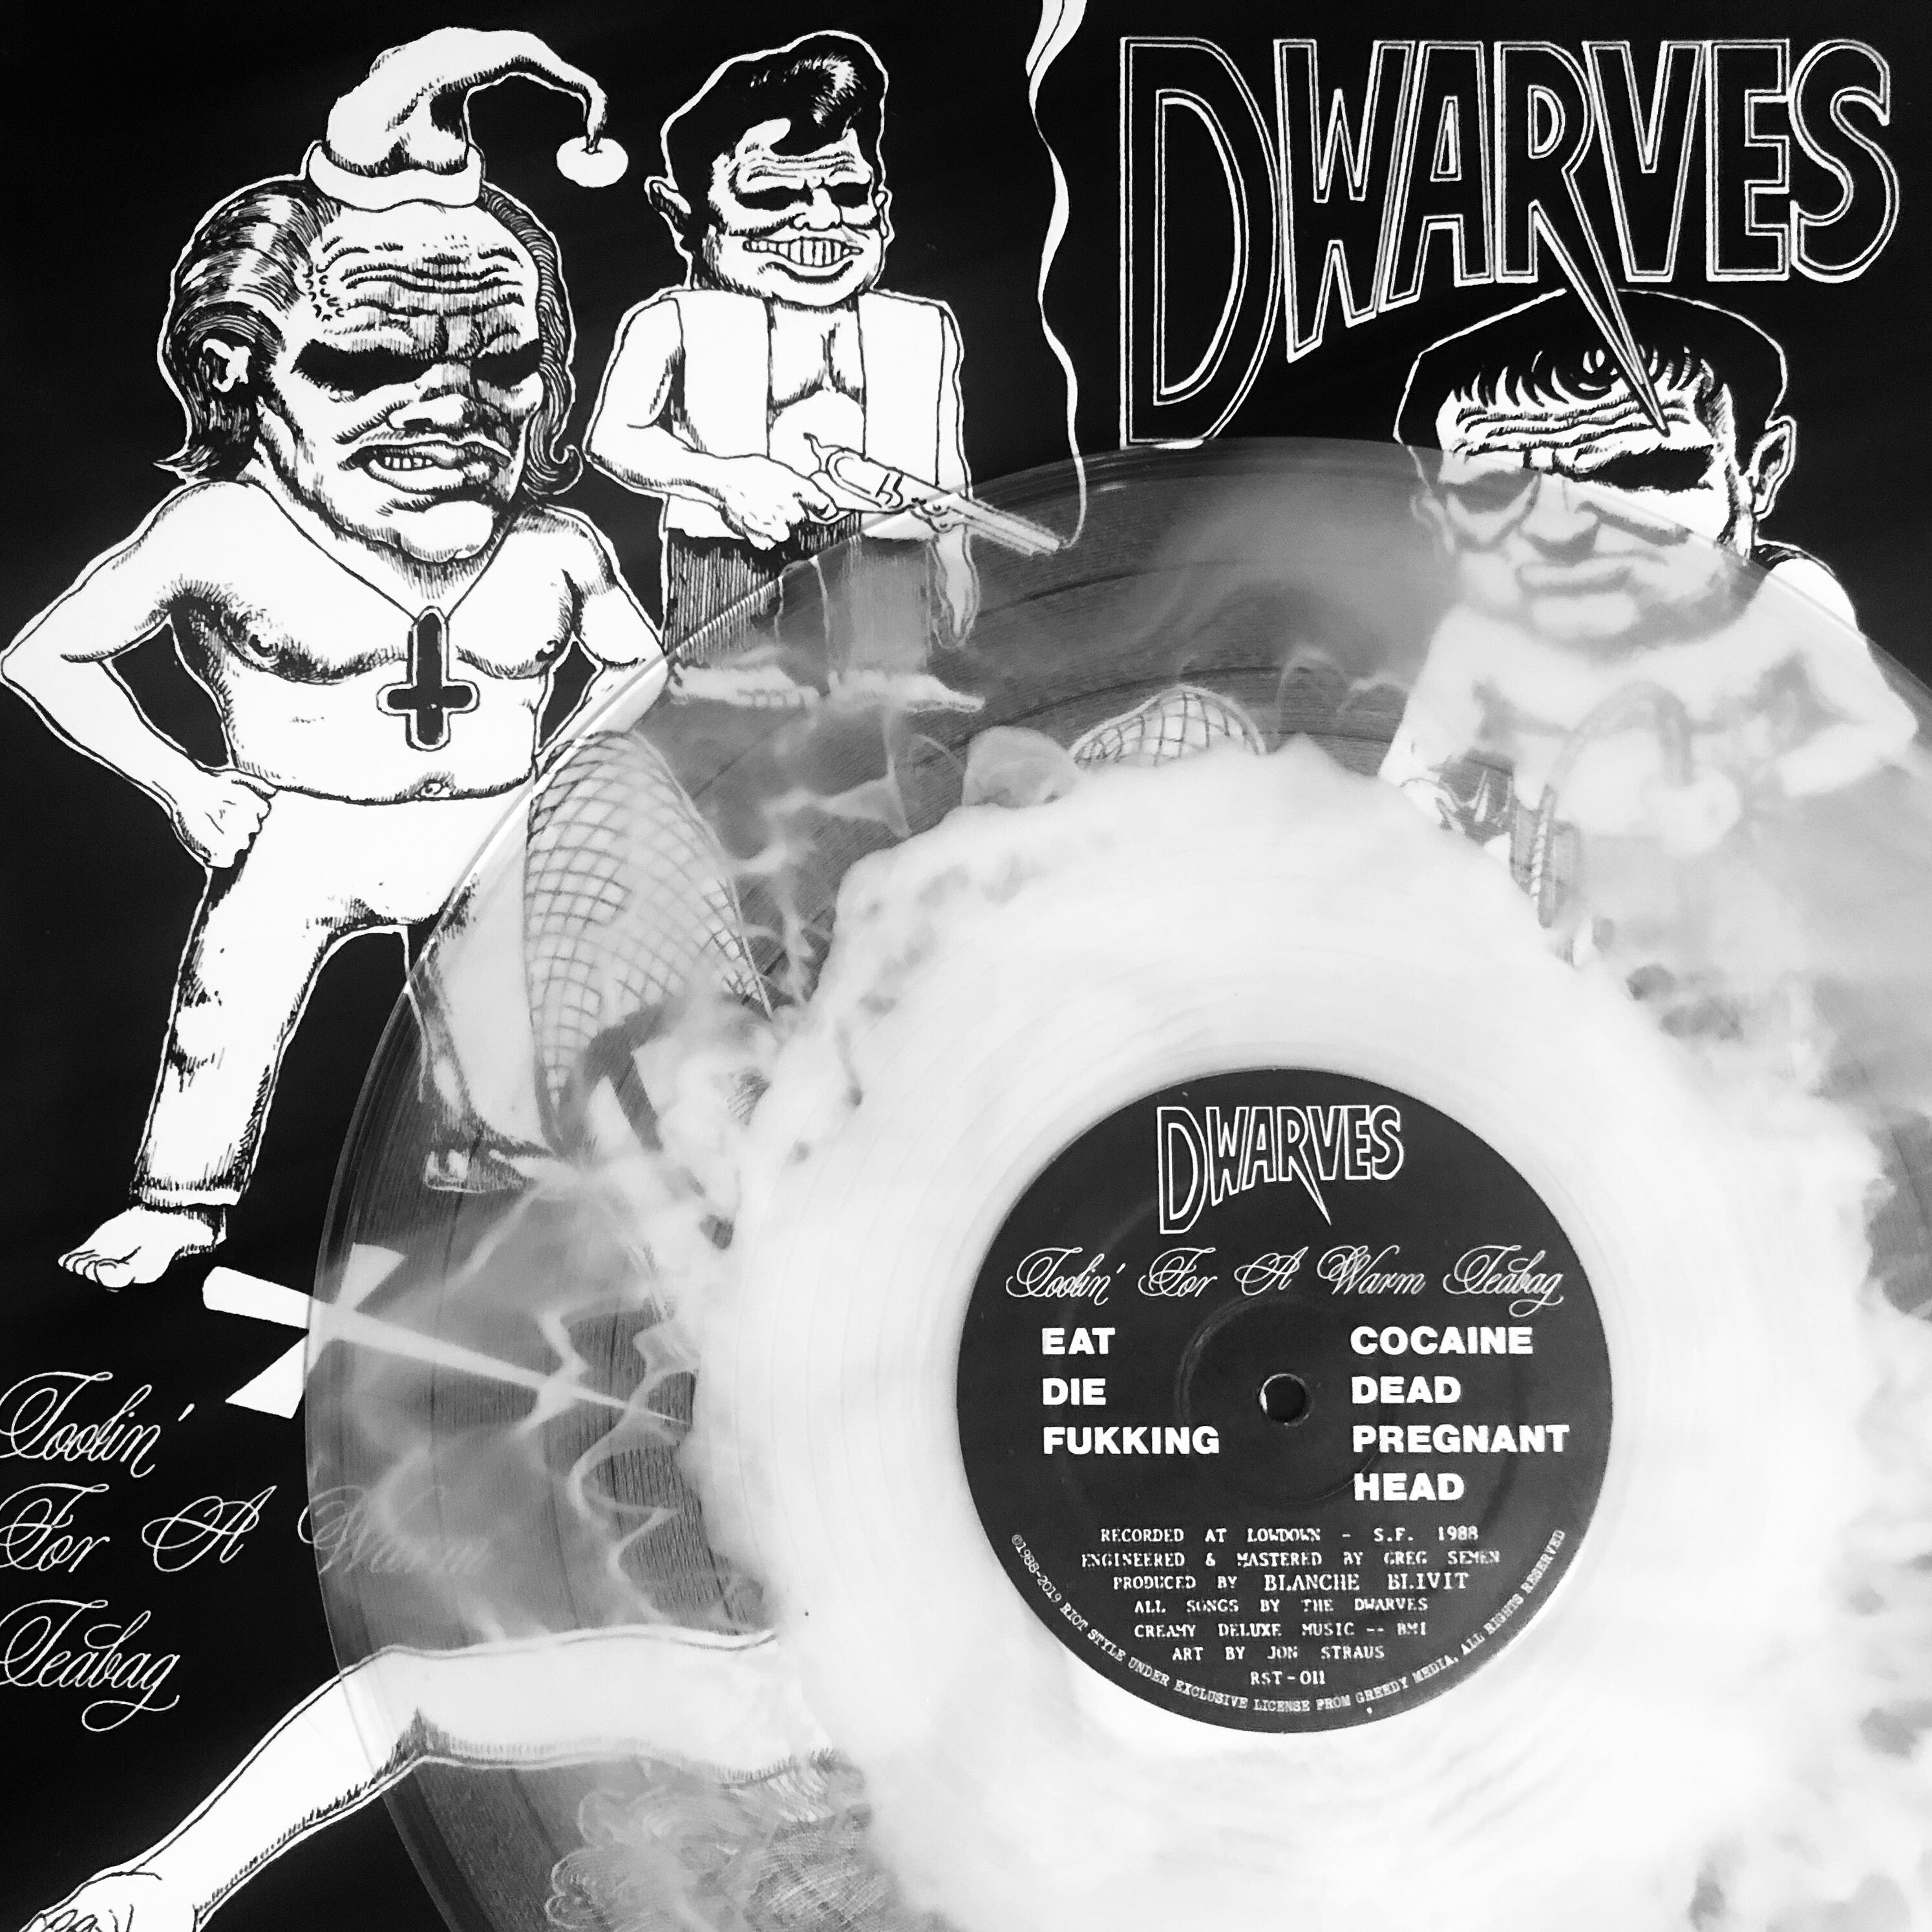 The Dwarves - Tooling For A Warm Teabag 12-Inch LP VINYL/CD/CASS/DIGITAL With Glow-In-The-Dark Cover Out Now On Riot Style!